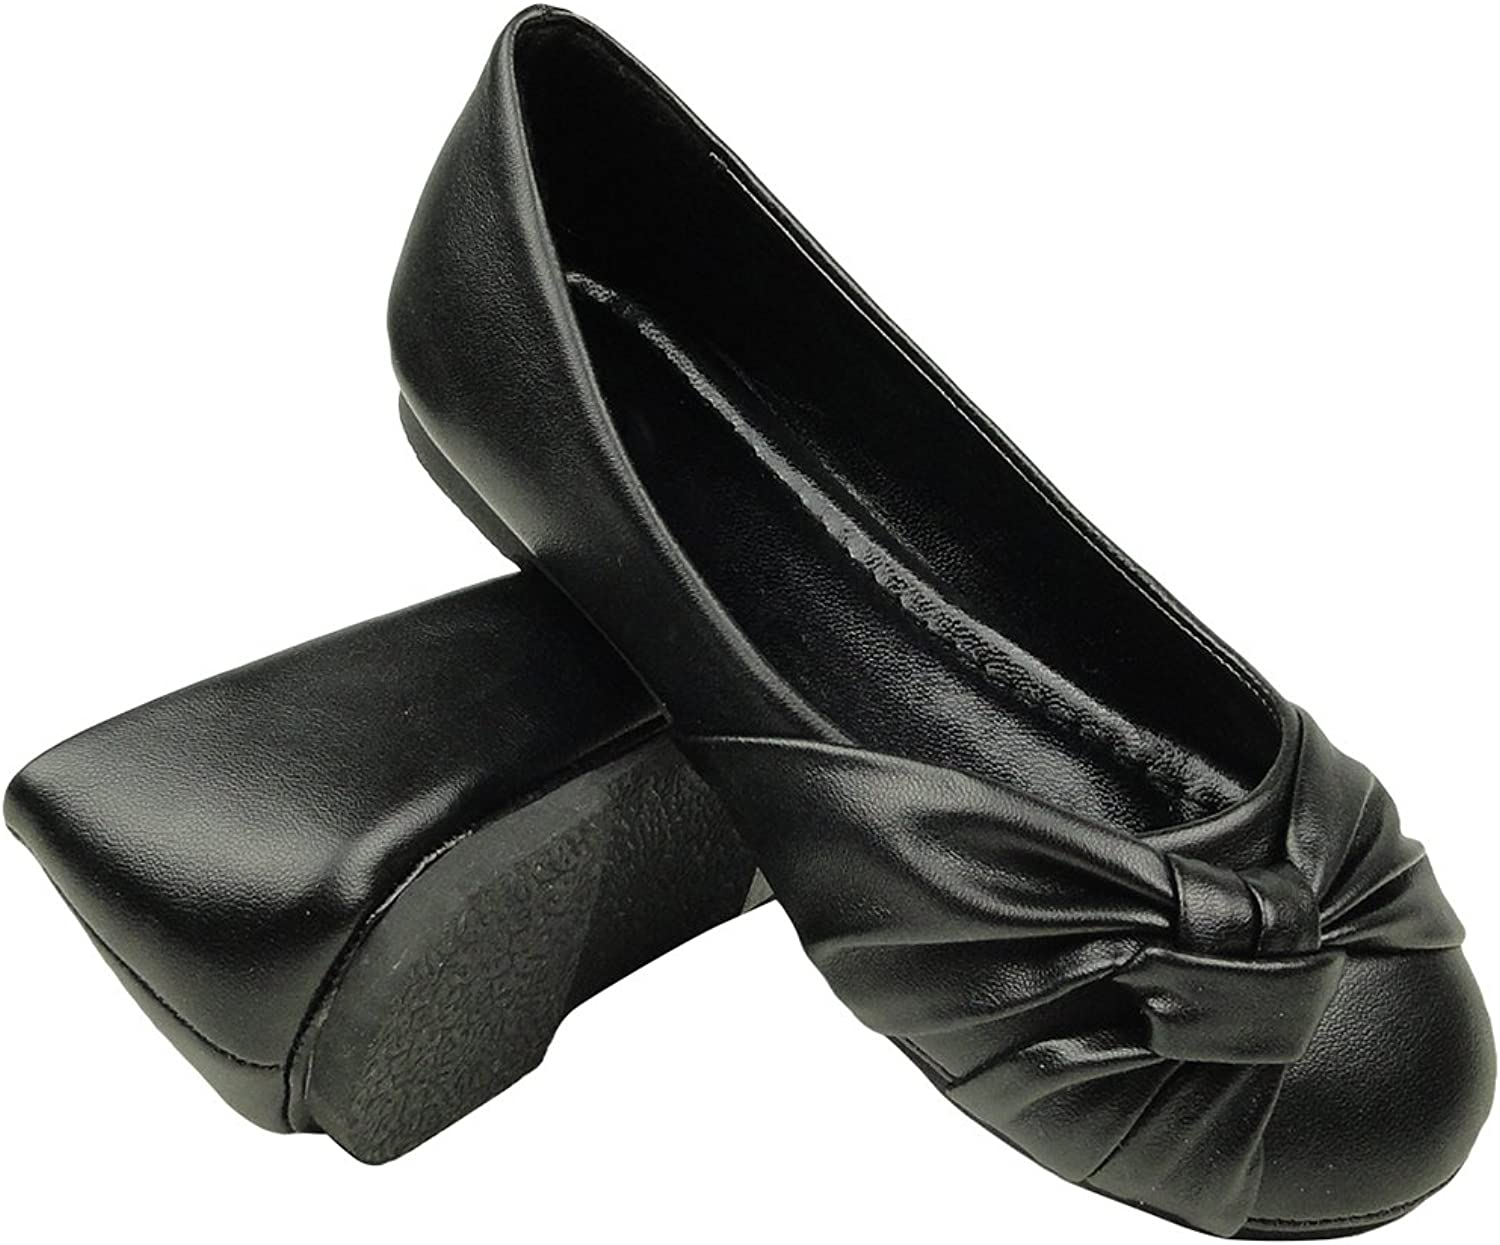 TG By KSC Little Girl's Slip On Knotted Ballet Flat Casual Comfort shoes Sizes 9-4 Black